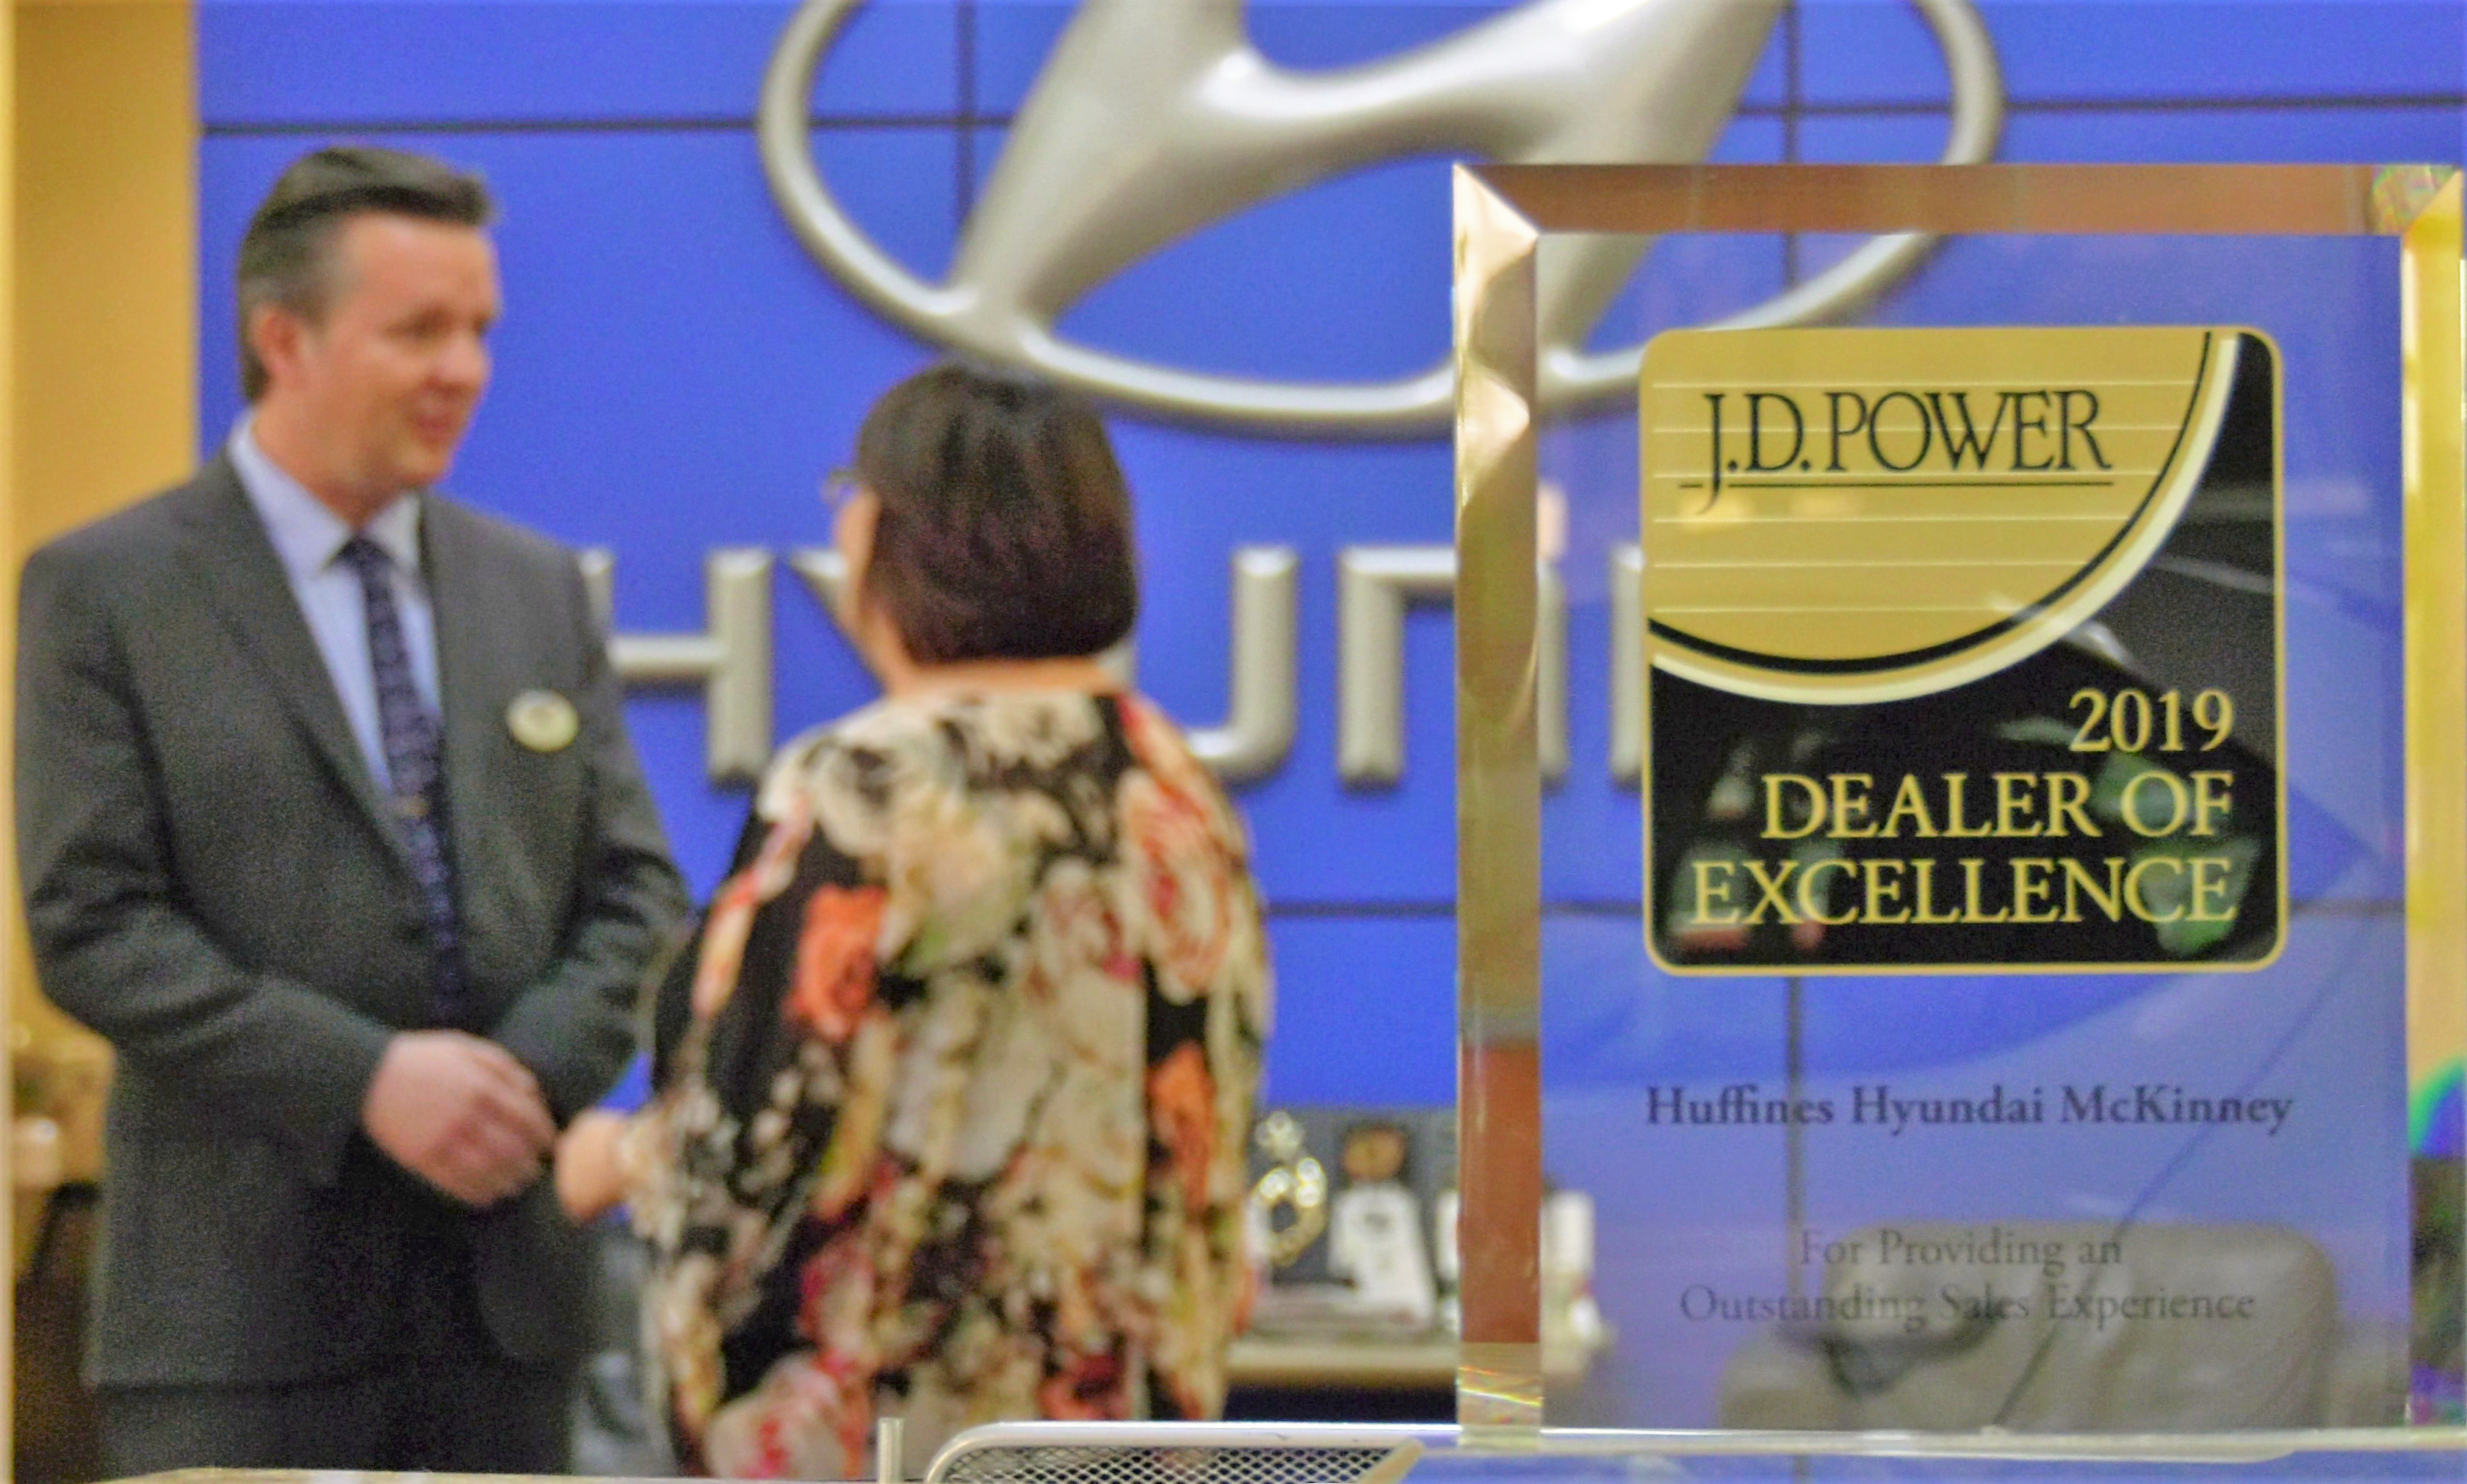 We Are So Proud Of Our Awesome Team At Huffines Hyundai Mckinney For Earning This Most Prestigious Honor From Jd Power As A 2019 Dealer Of E Hyundai Power Sake